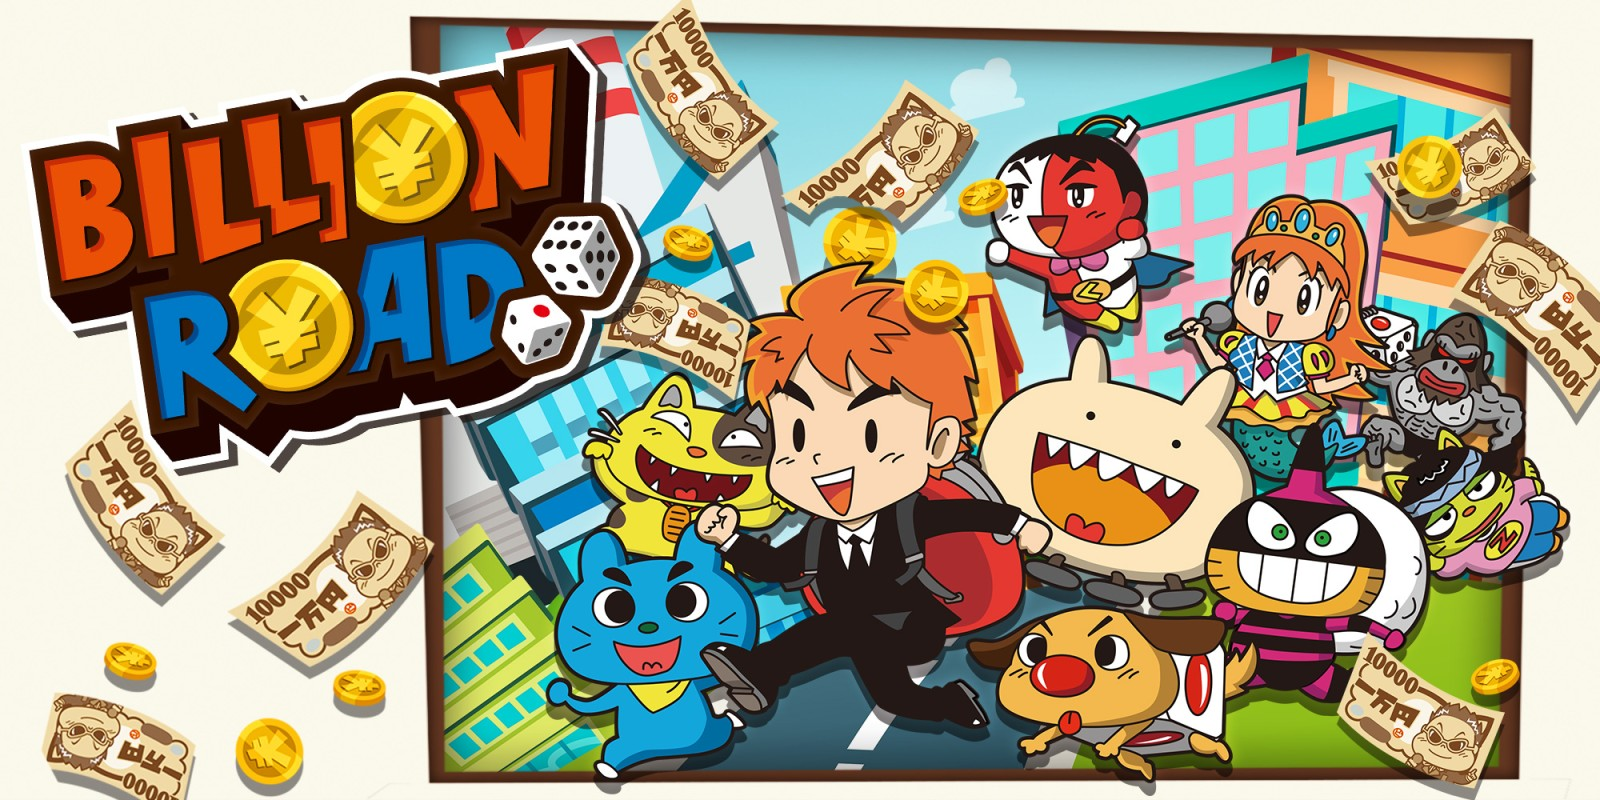 Billion Road Switch Review – Buying up Japan Boardgame Style